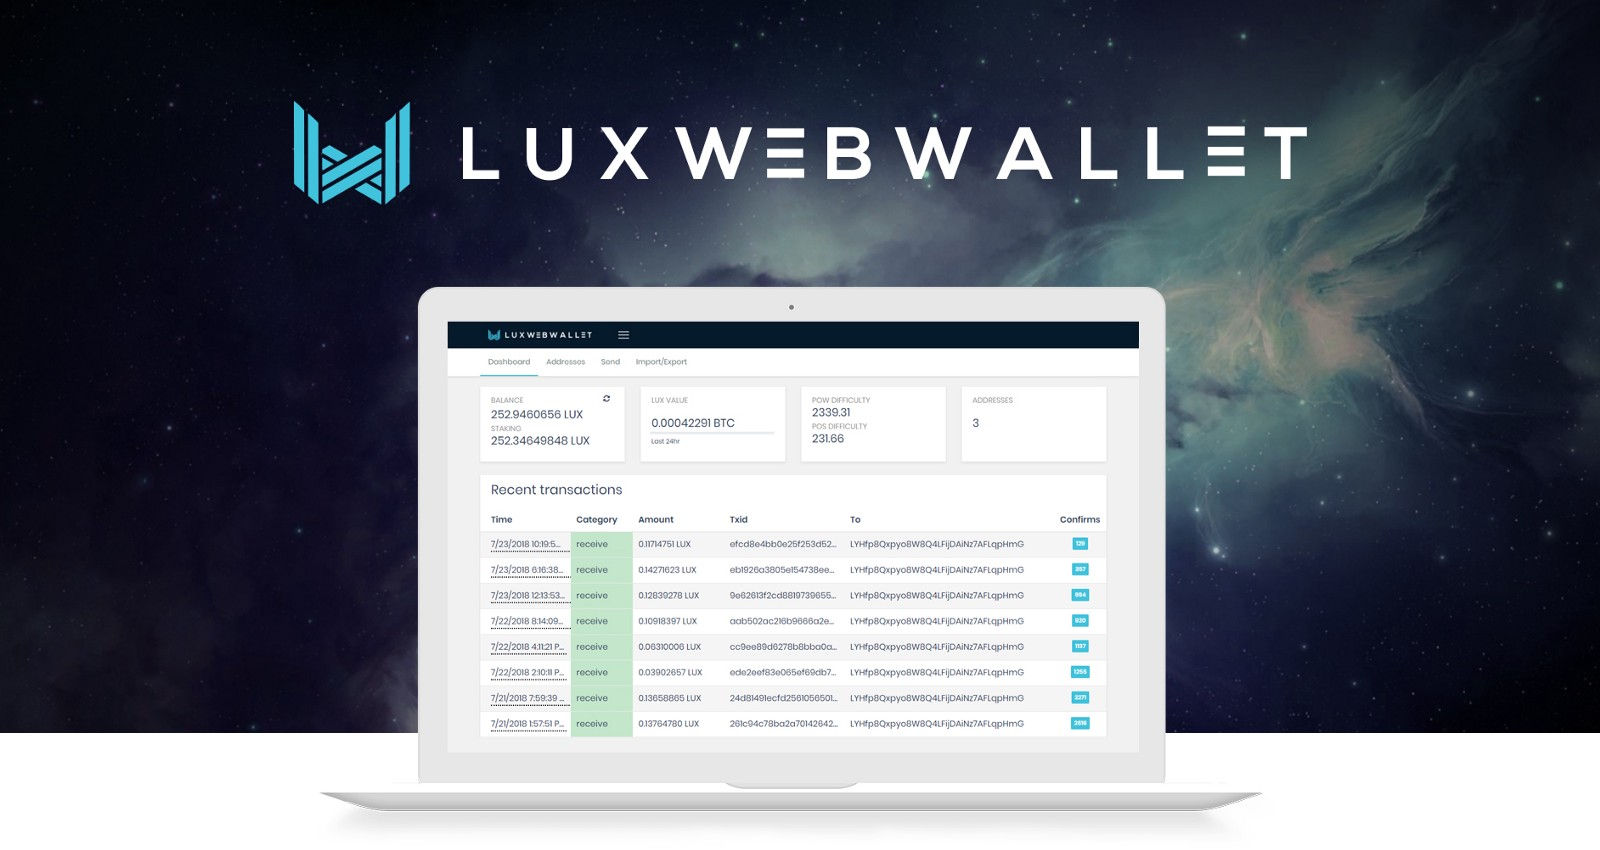 Lux coin web wallet